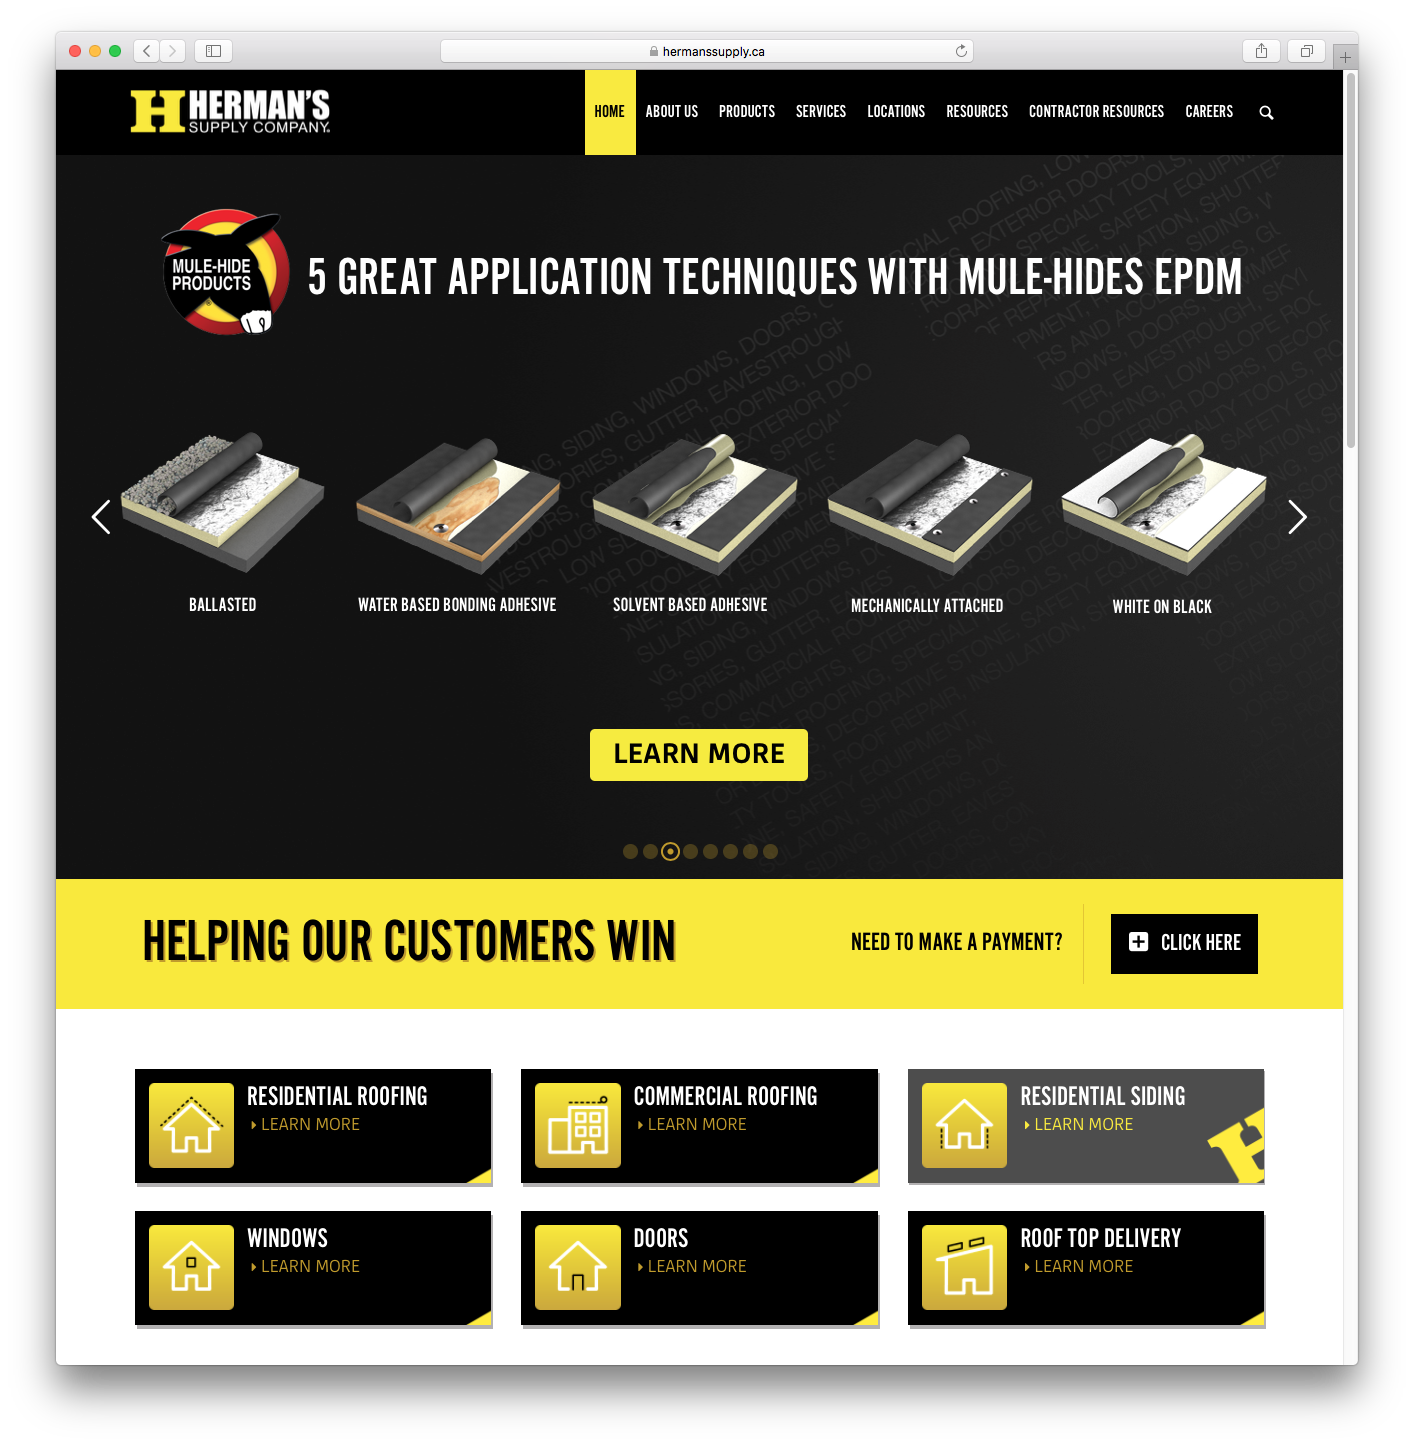 Herman's Supply Company Home Page